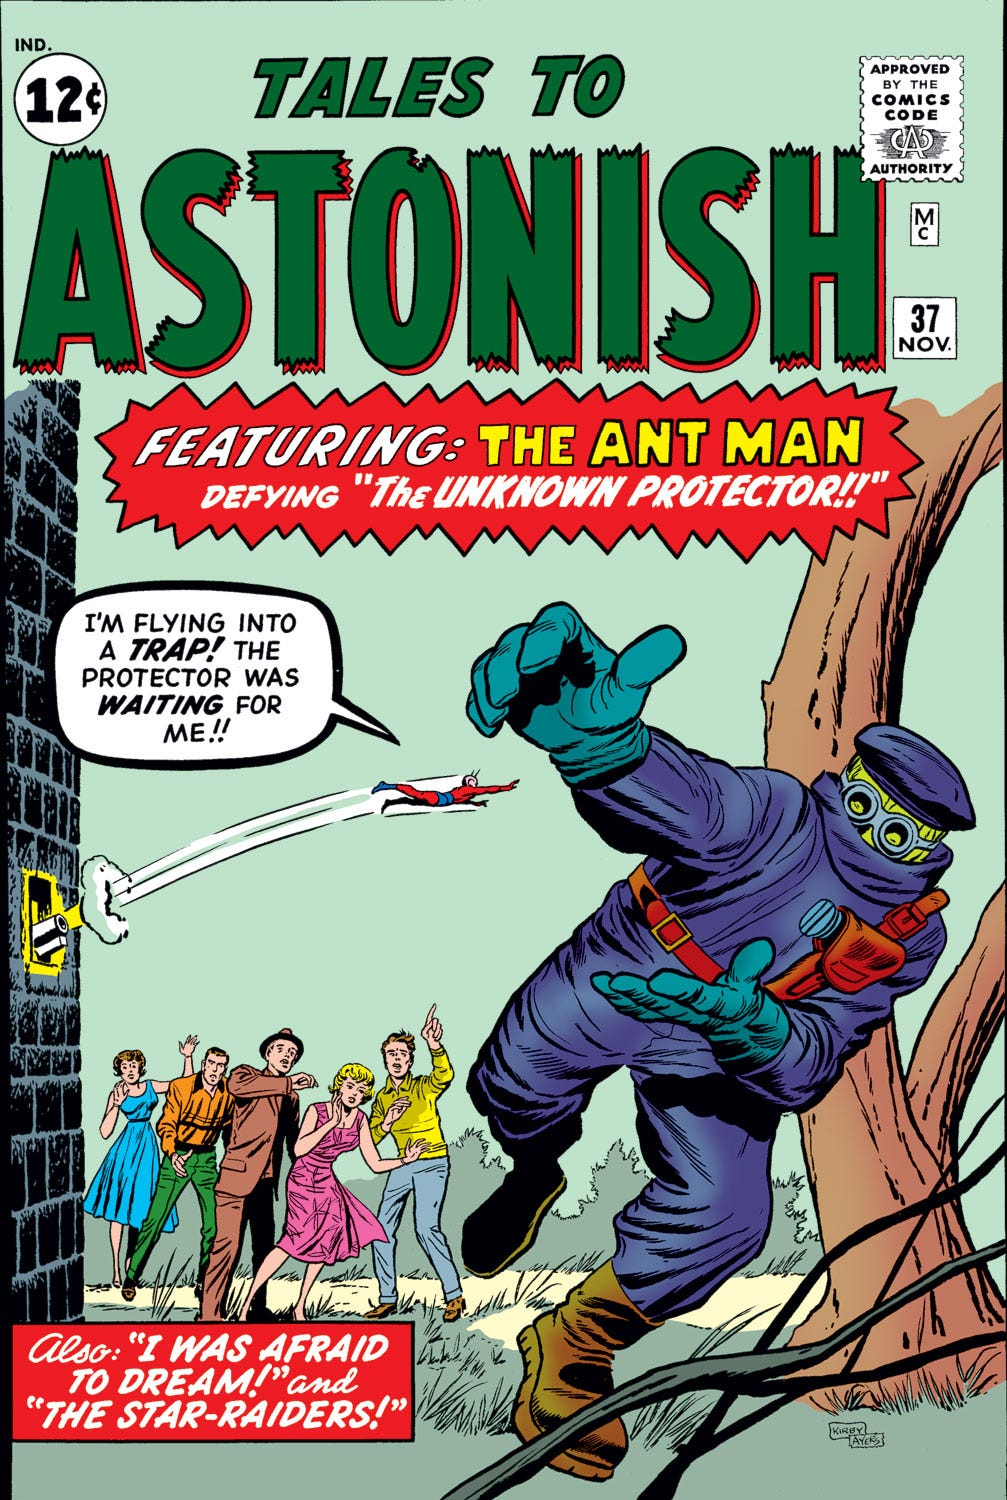 Tales to Astonish (1959) #37   Comic Issues   Marvel